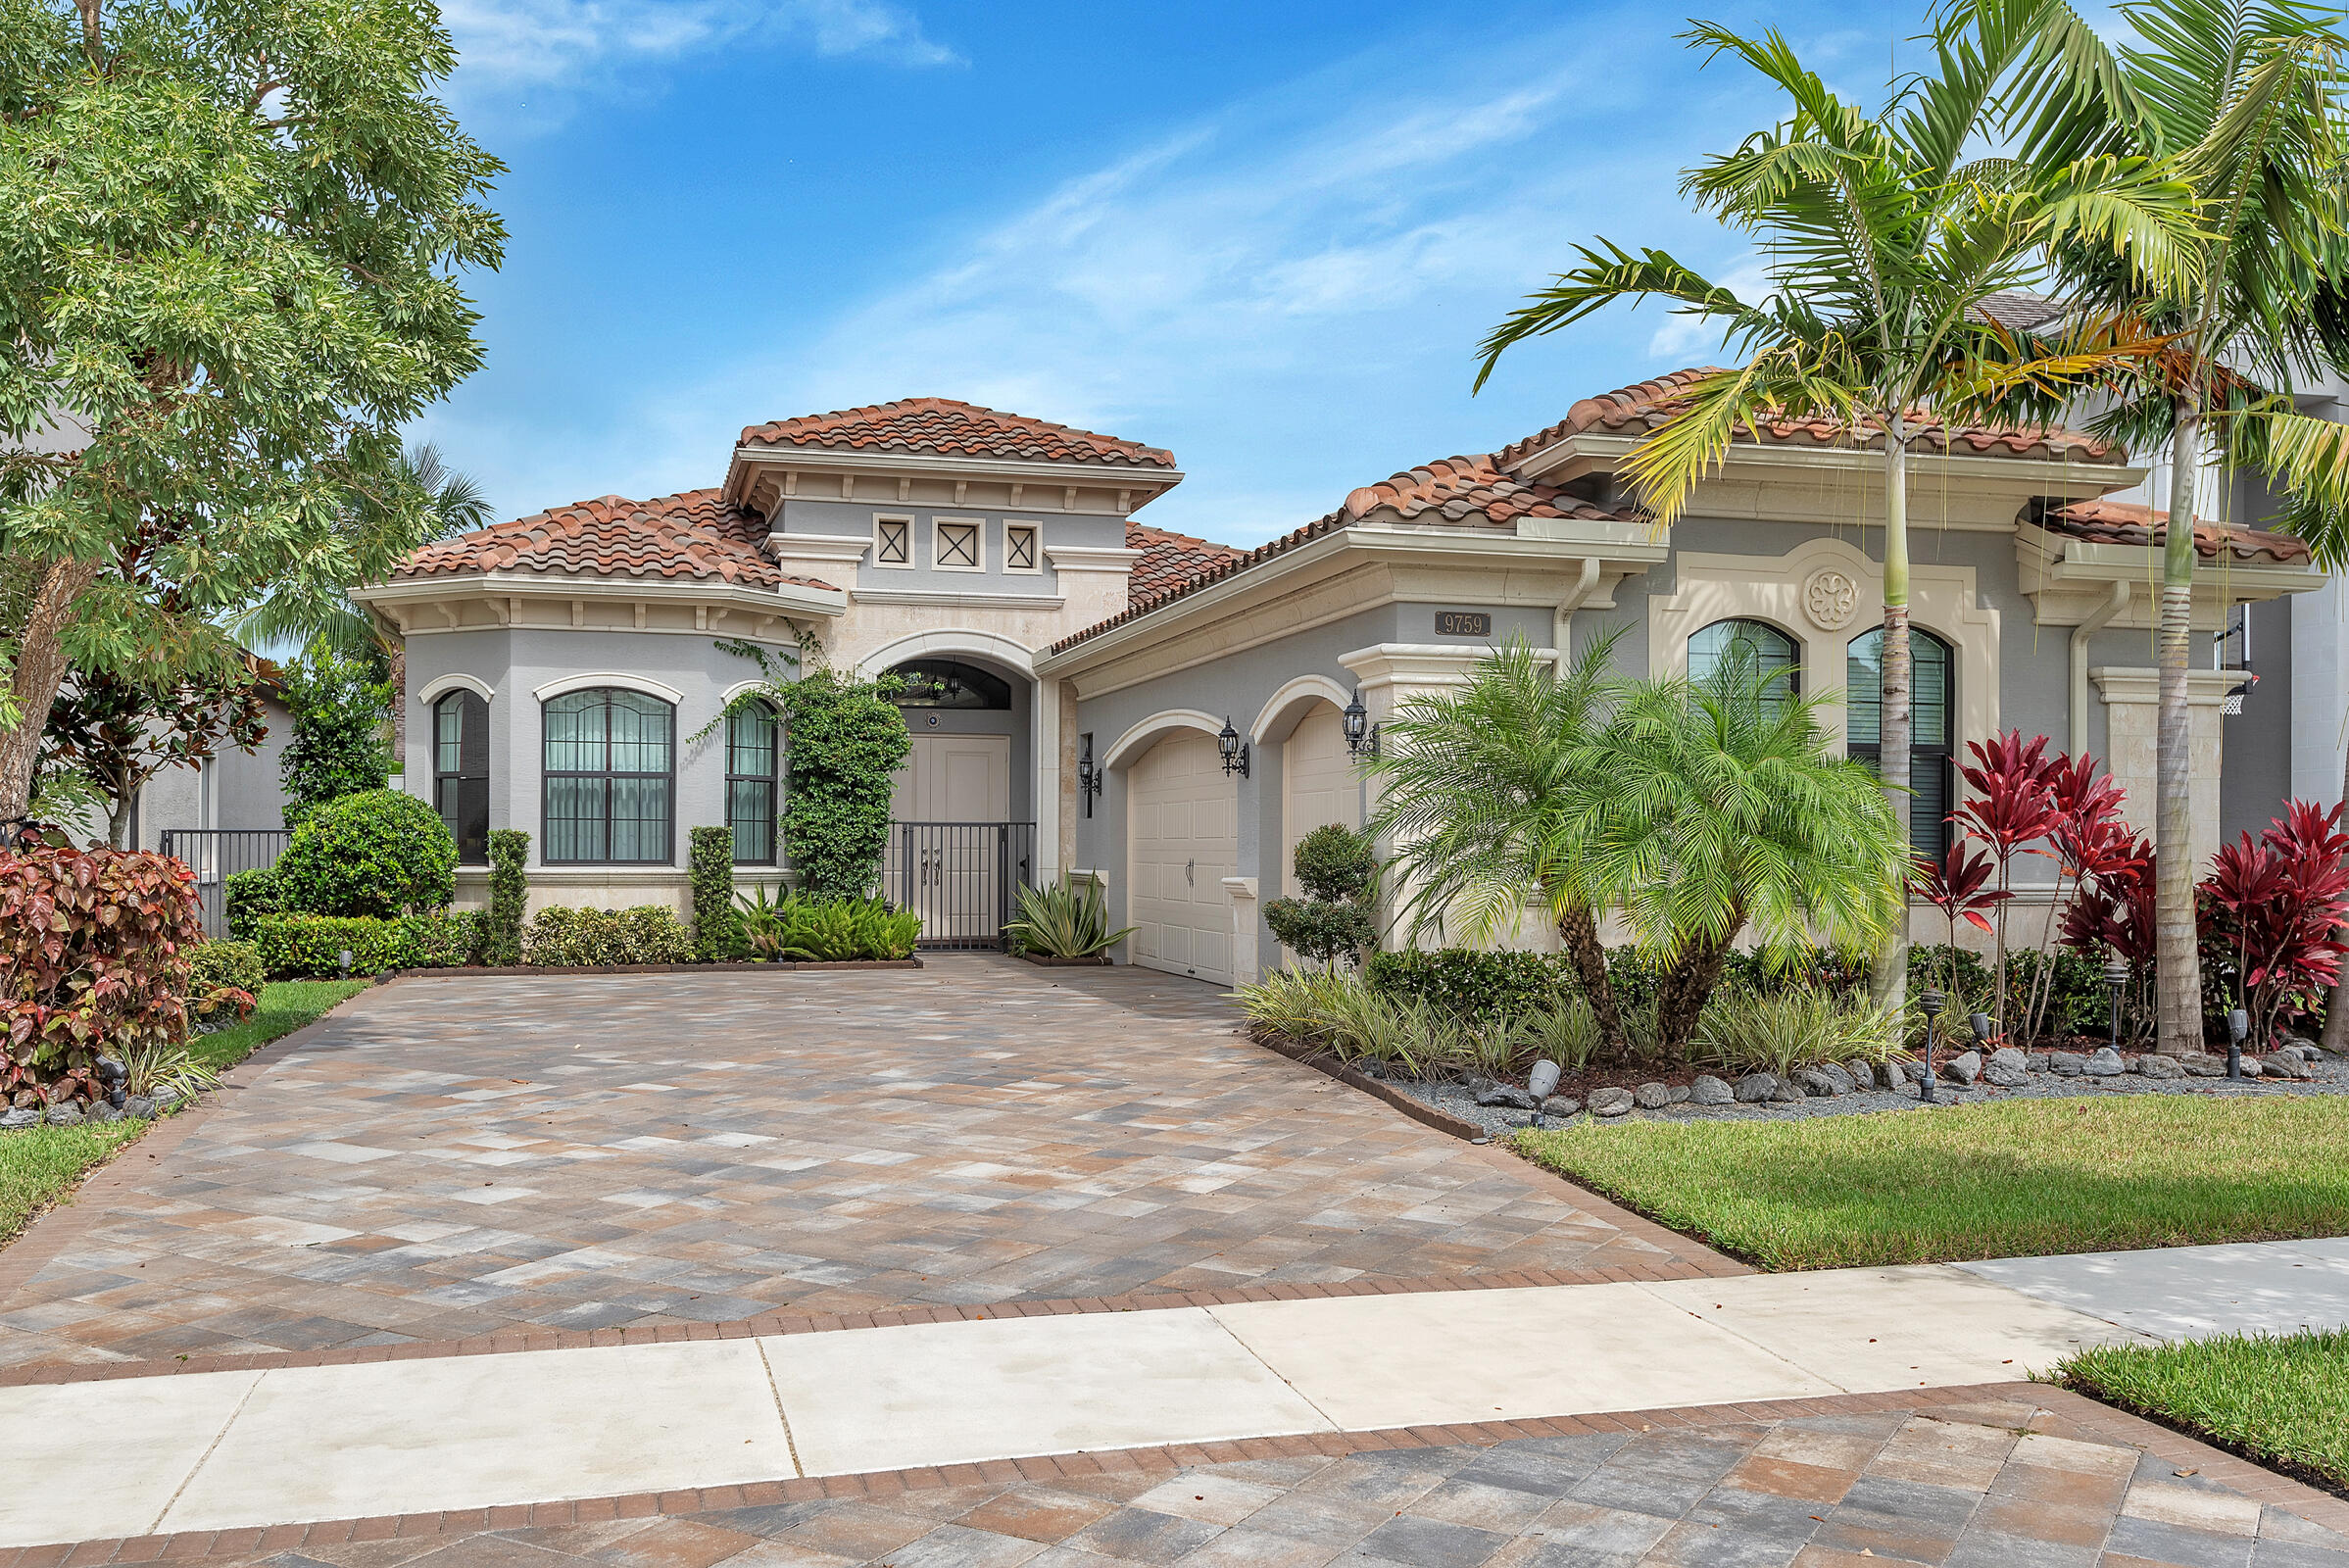 9759 Vitrail Lane, Delray Beach, Florida 33446, 4 Bedrooms Bedrooms, ,3.1 BathroomsBathrooms,Single Family Detached,For Sale,Vitrail,RX-10752411